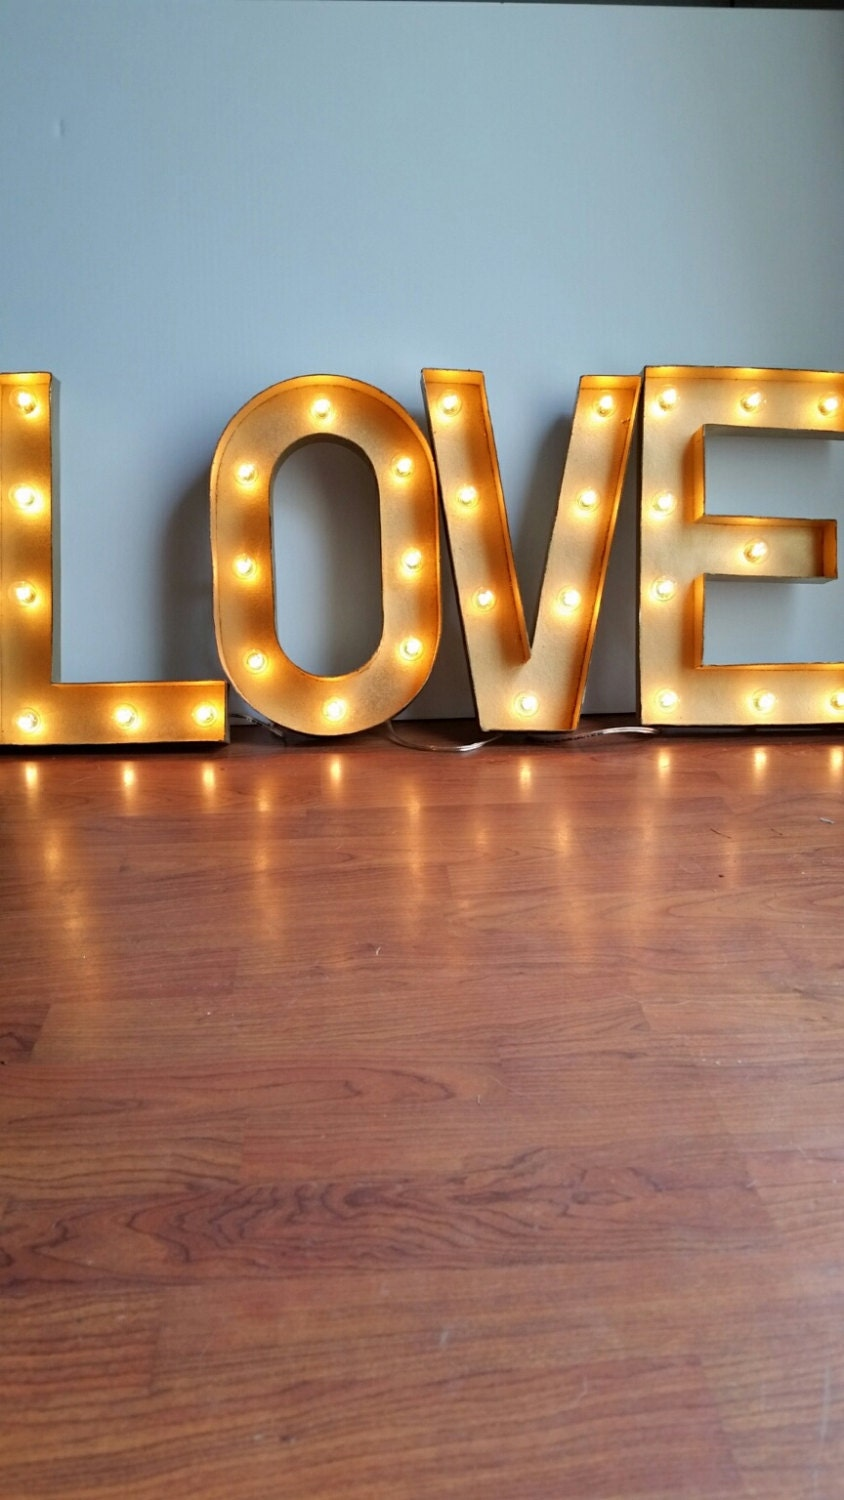 marquee light up letters 16 light up gold letters marquee sign 23581 | il fullxfull.1014862521 tevk